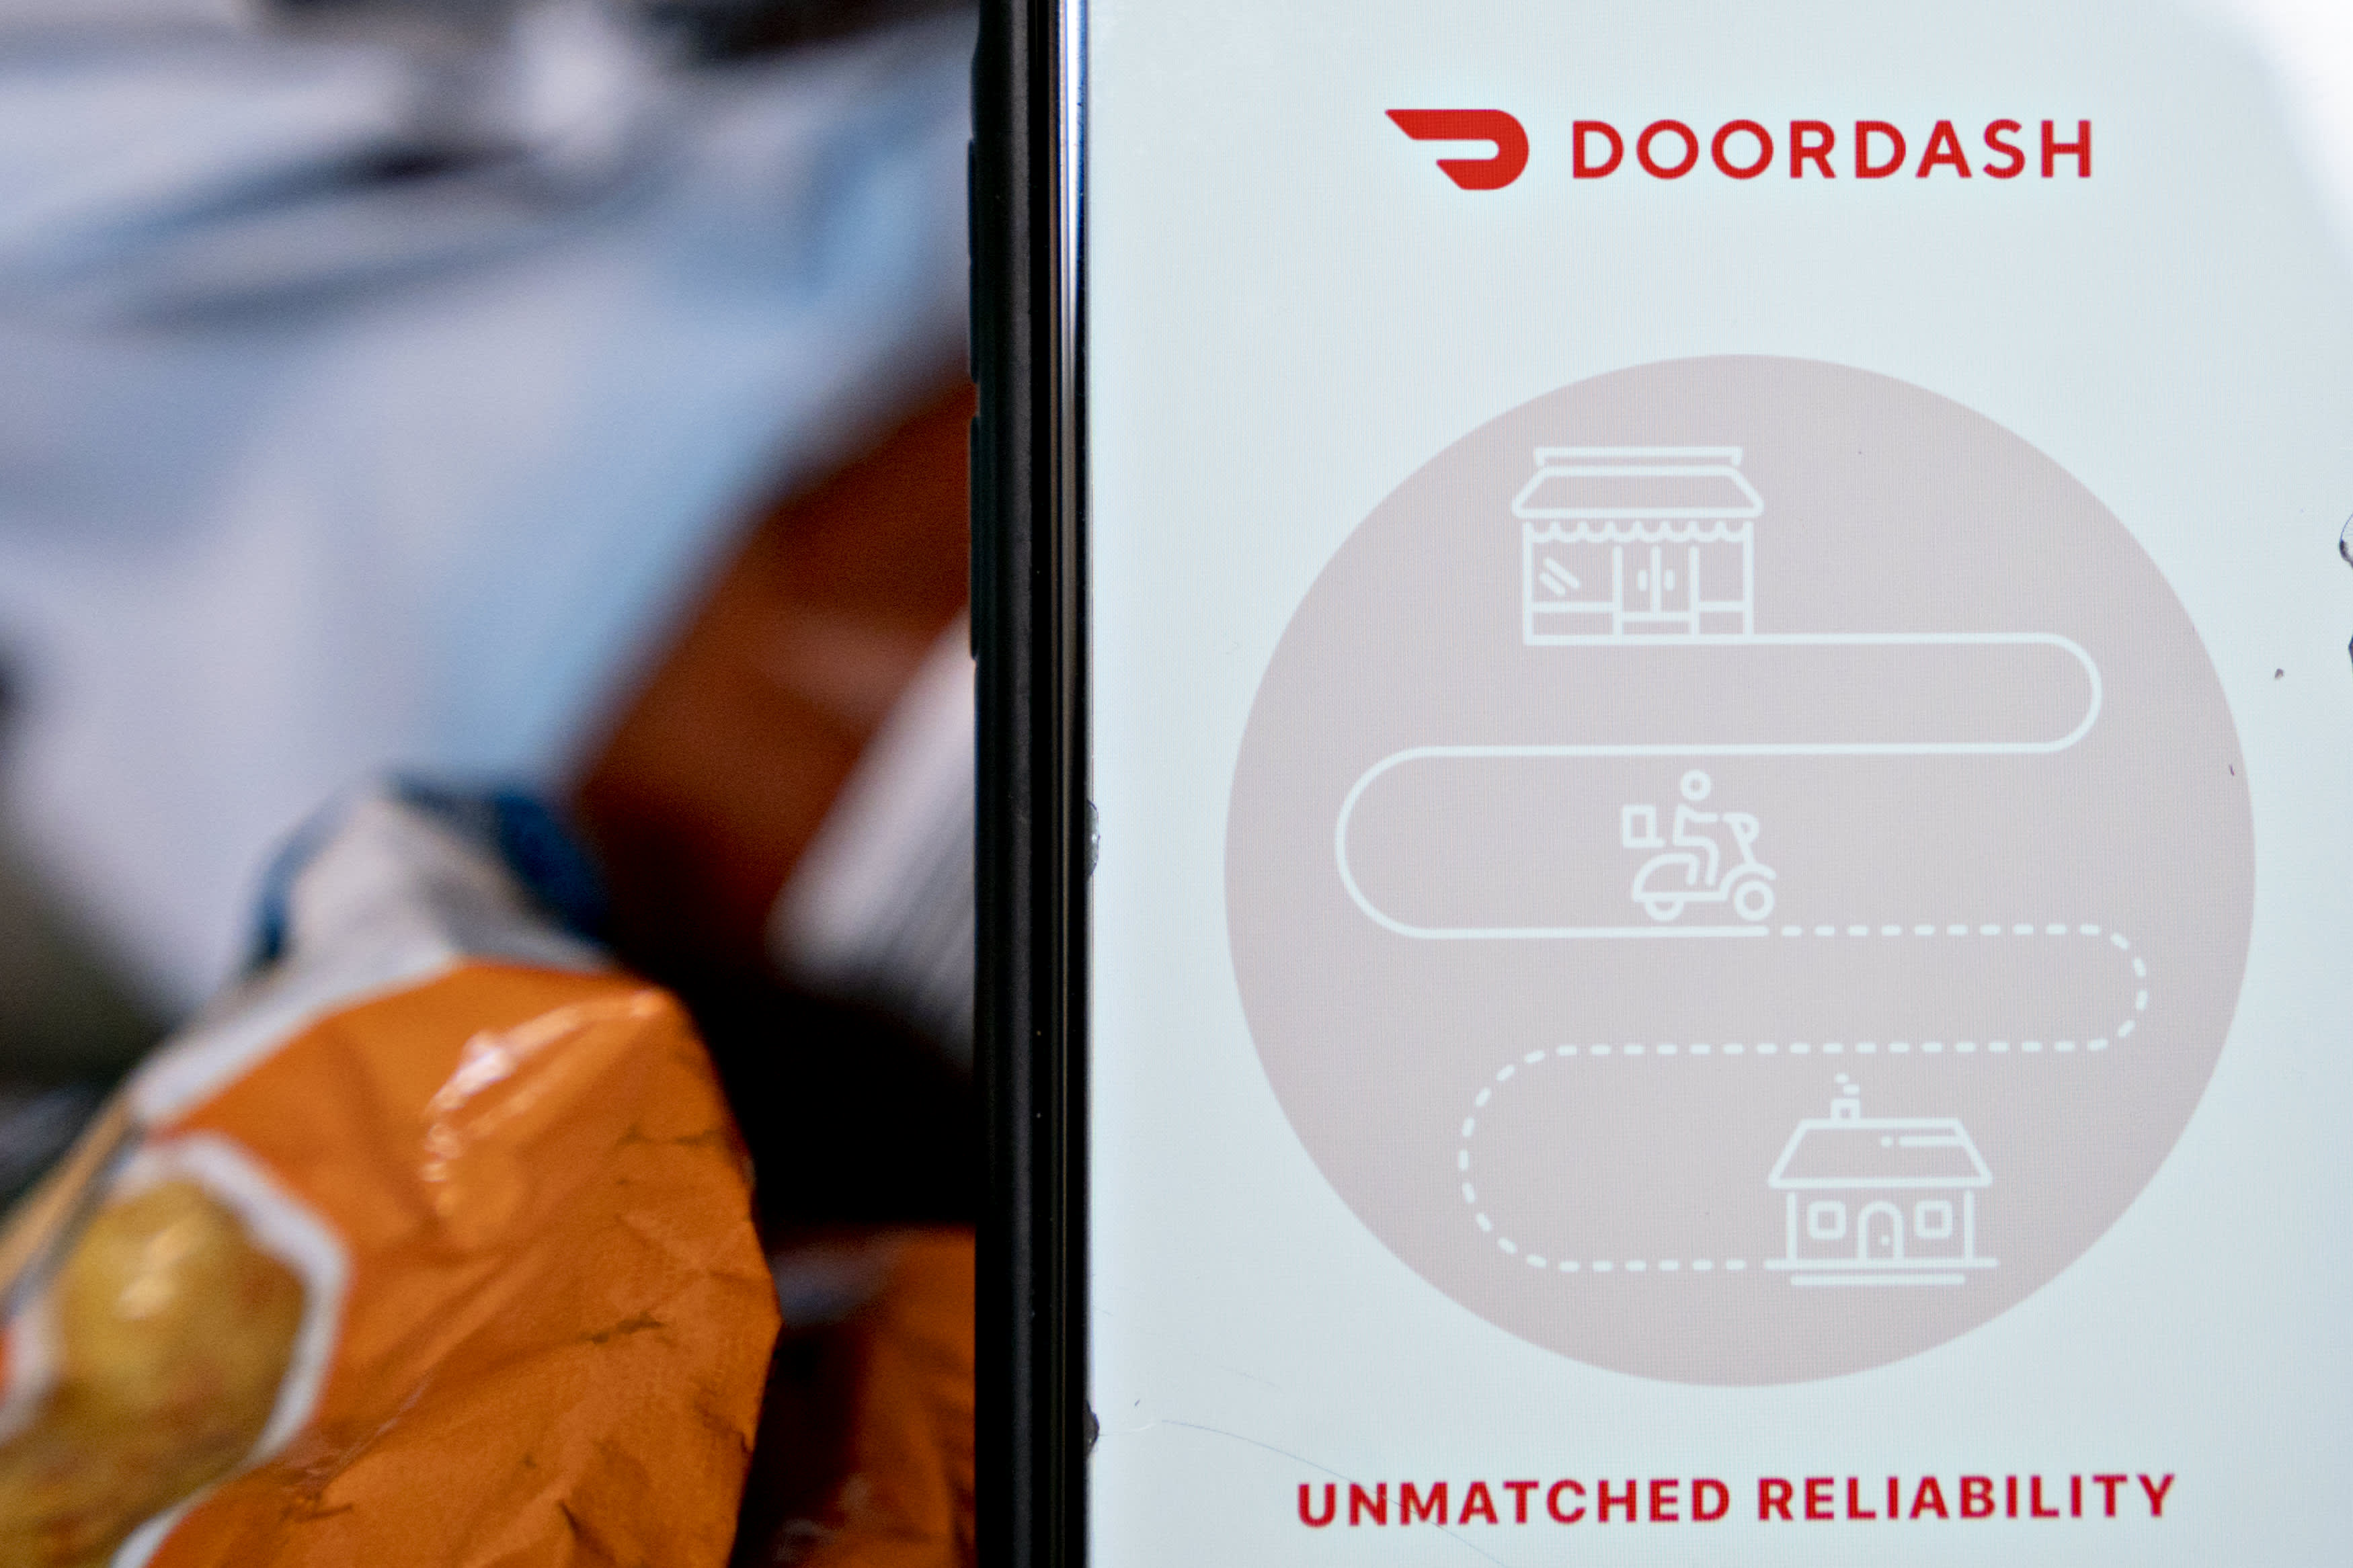 DoorDash continues to lead in the food delivery wars